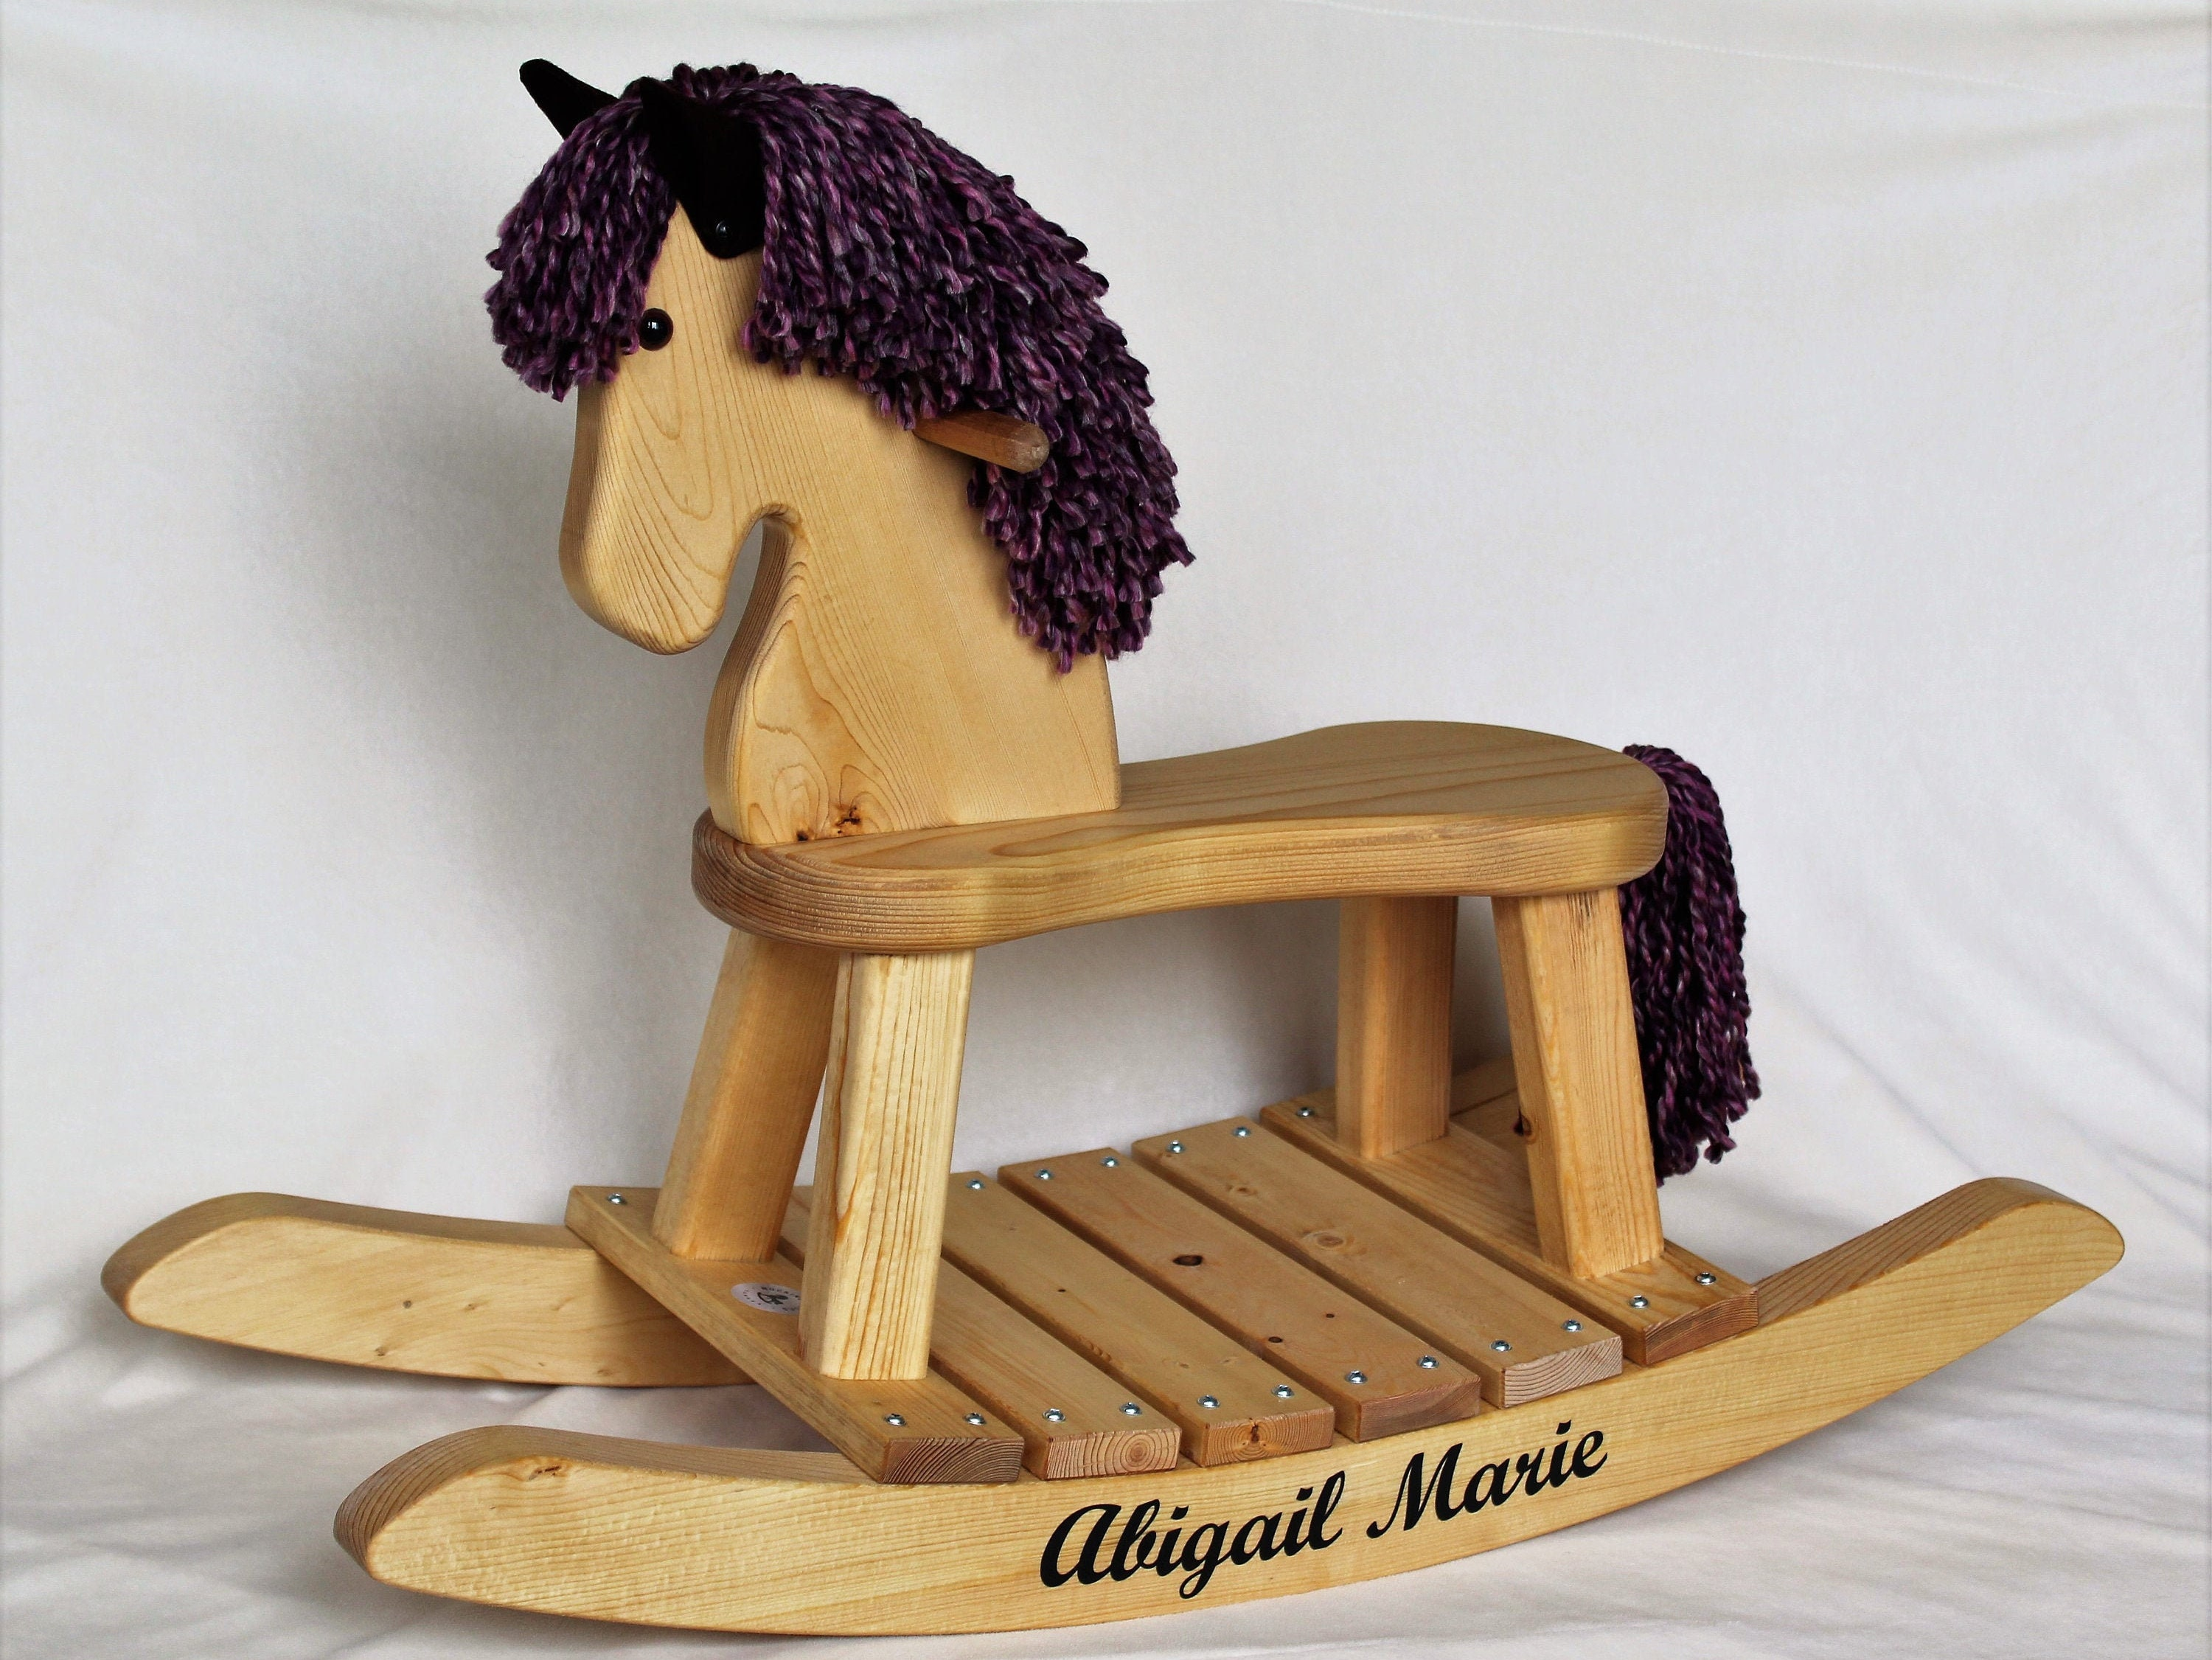 Traditional Toddler Wooden Rocking Horse - Personalized Gift for Children